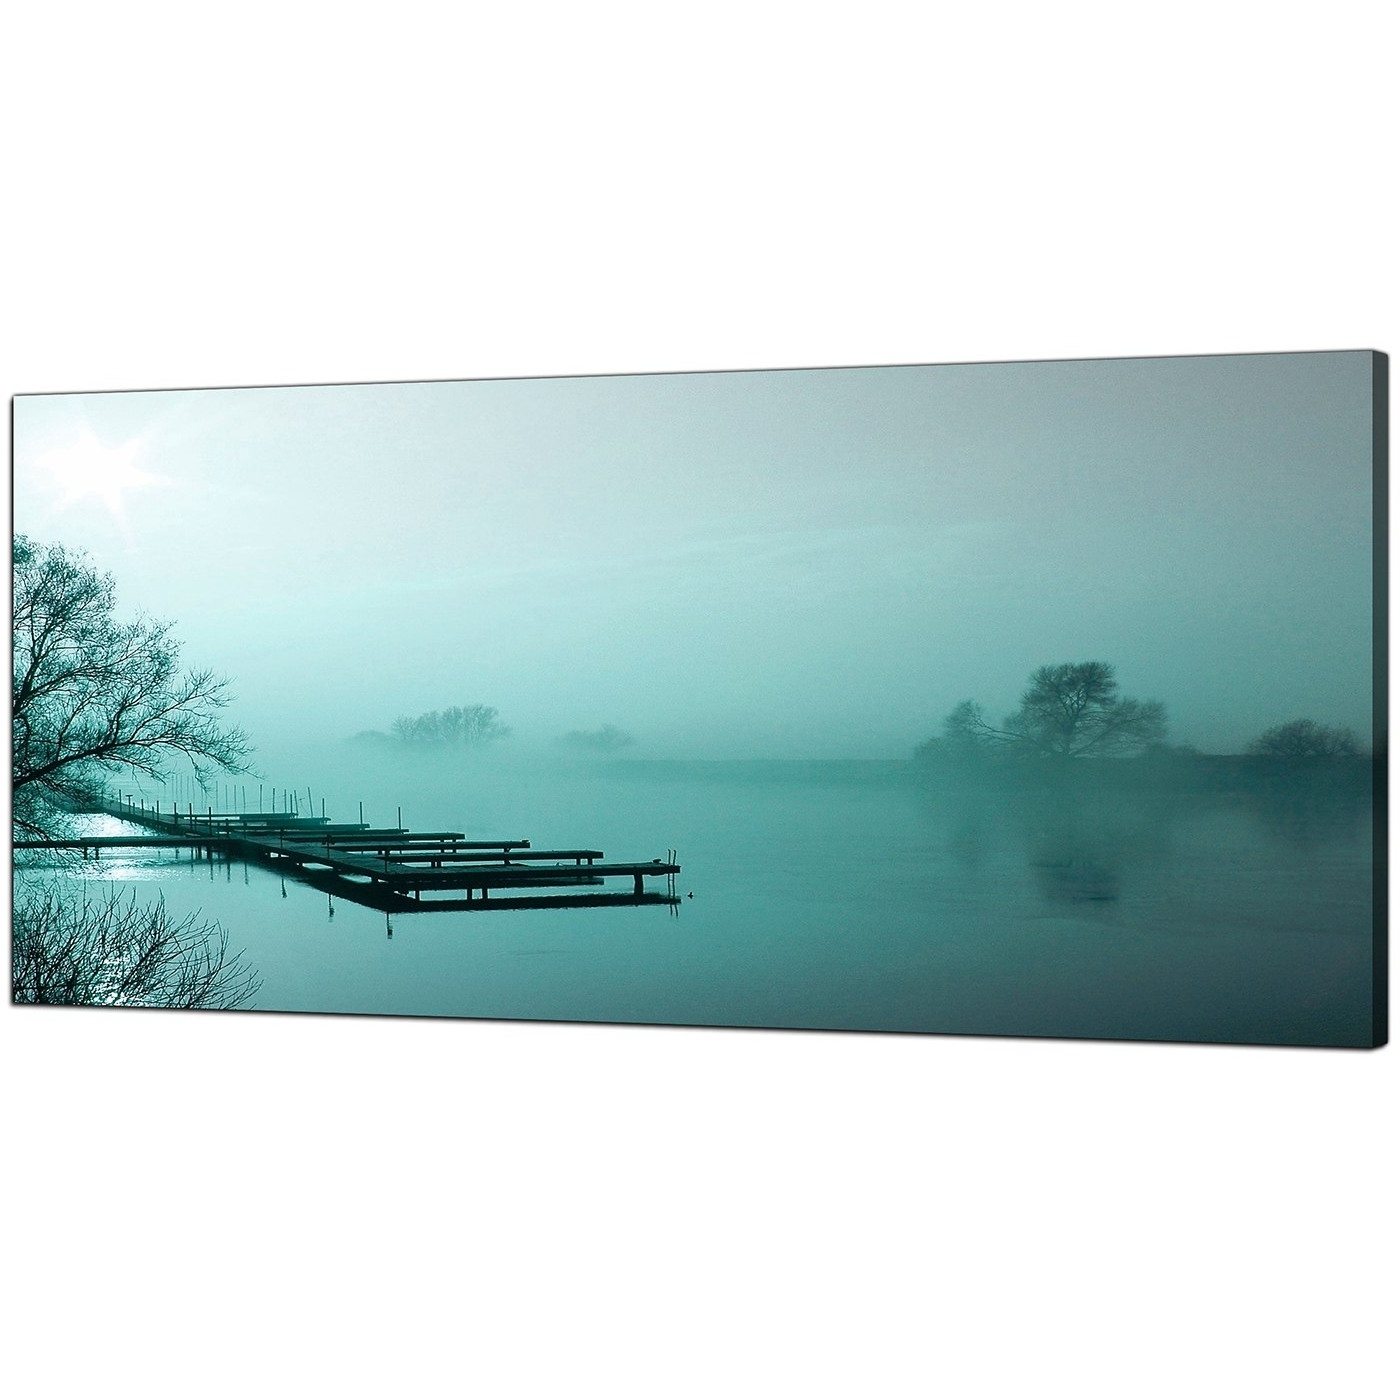 Teal Wall Art Uk For Well Known Large Teal Canvas Art Of A River Landscape (Gallery 5 of 15)